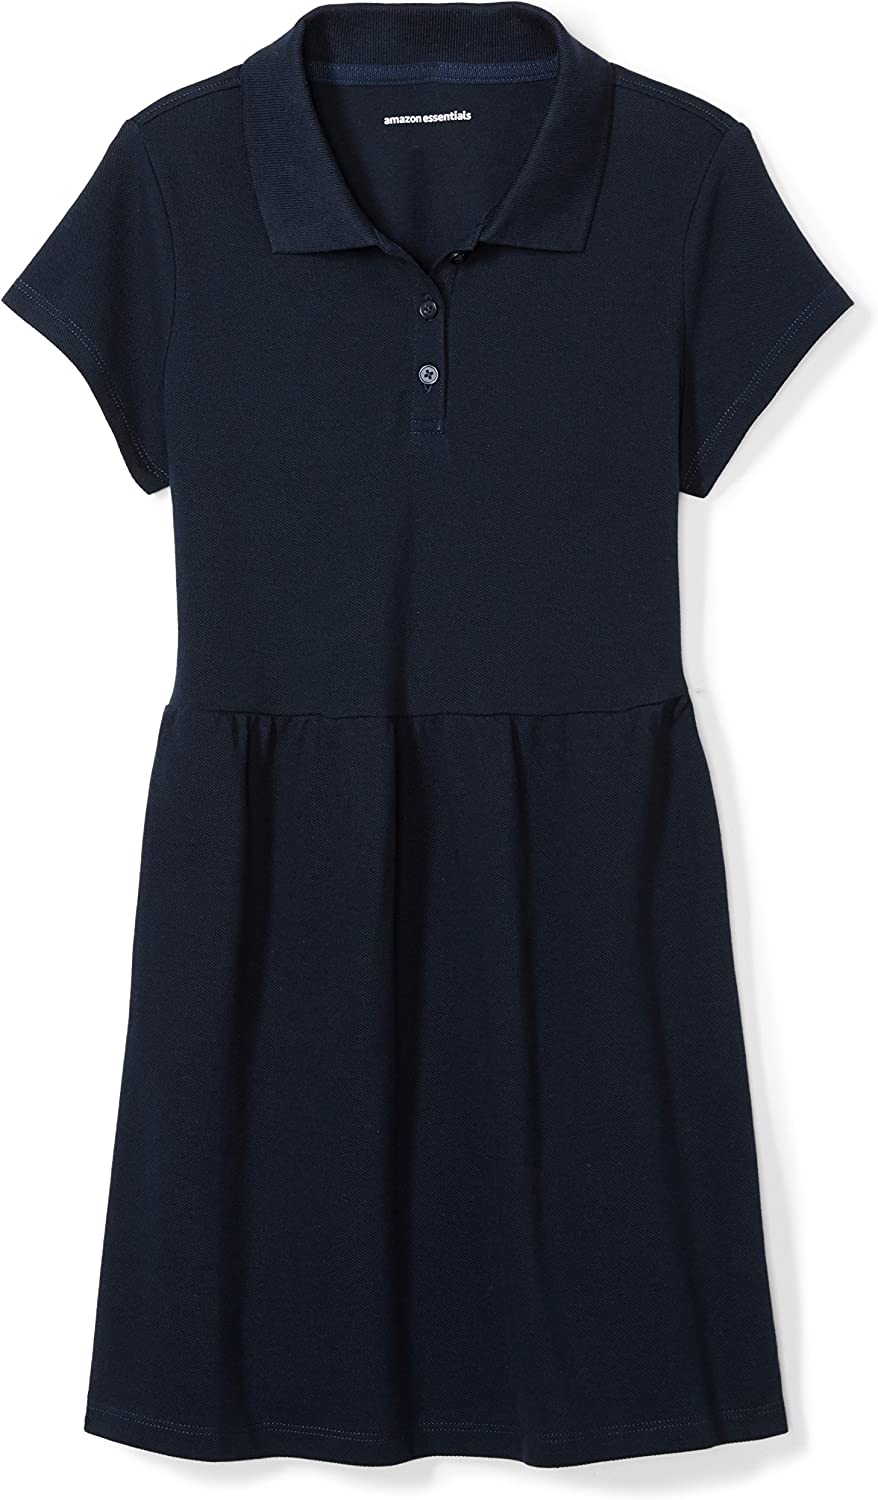 Amazon Essentials Girl's Short-Sleeve Polo Dress